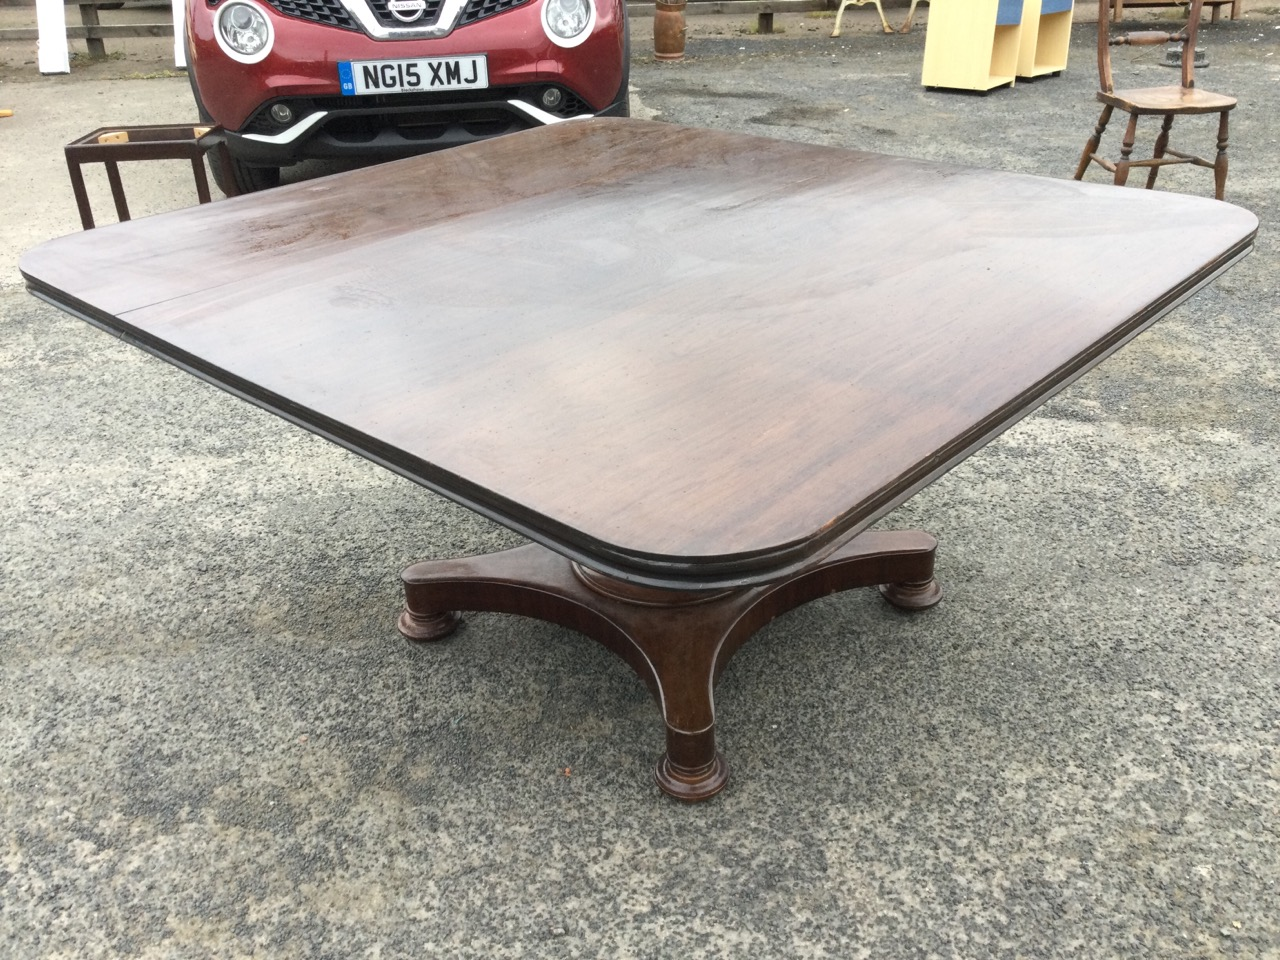 A large nineteenth century walnut breakfast table, the rectangular top with moulded edge raised on - Image 2 of 3